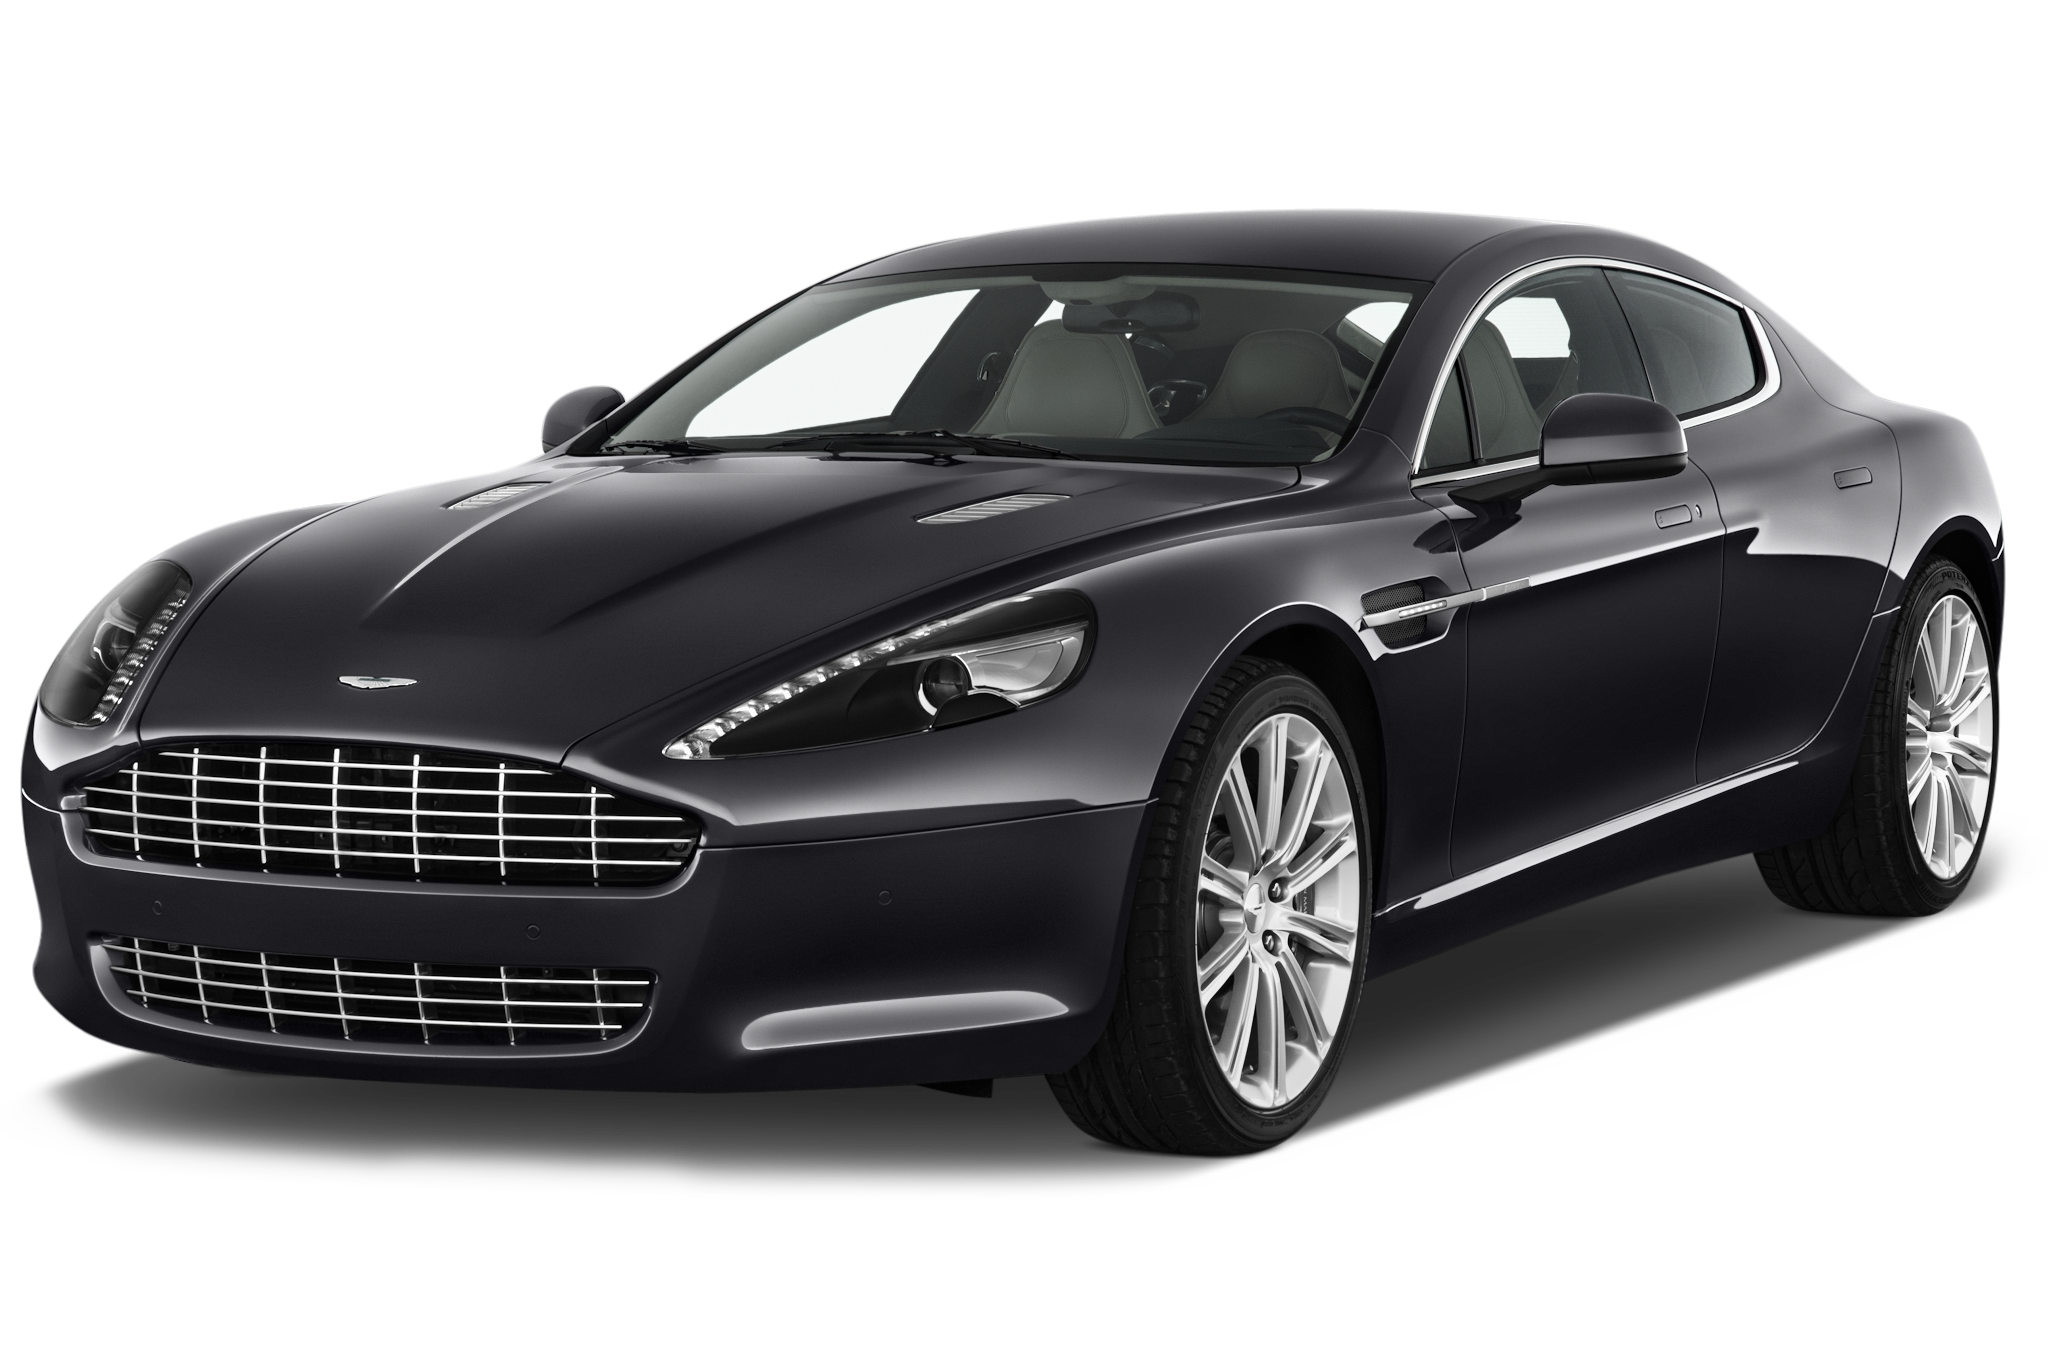 2011 Aston Martin Rapide Specs And Features